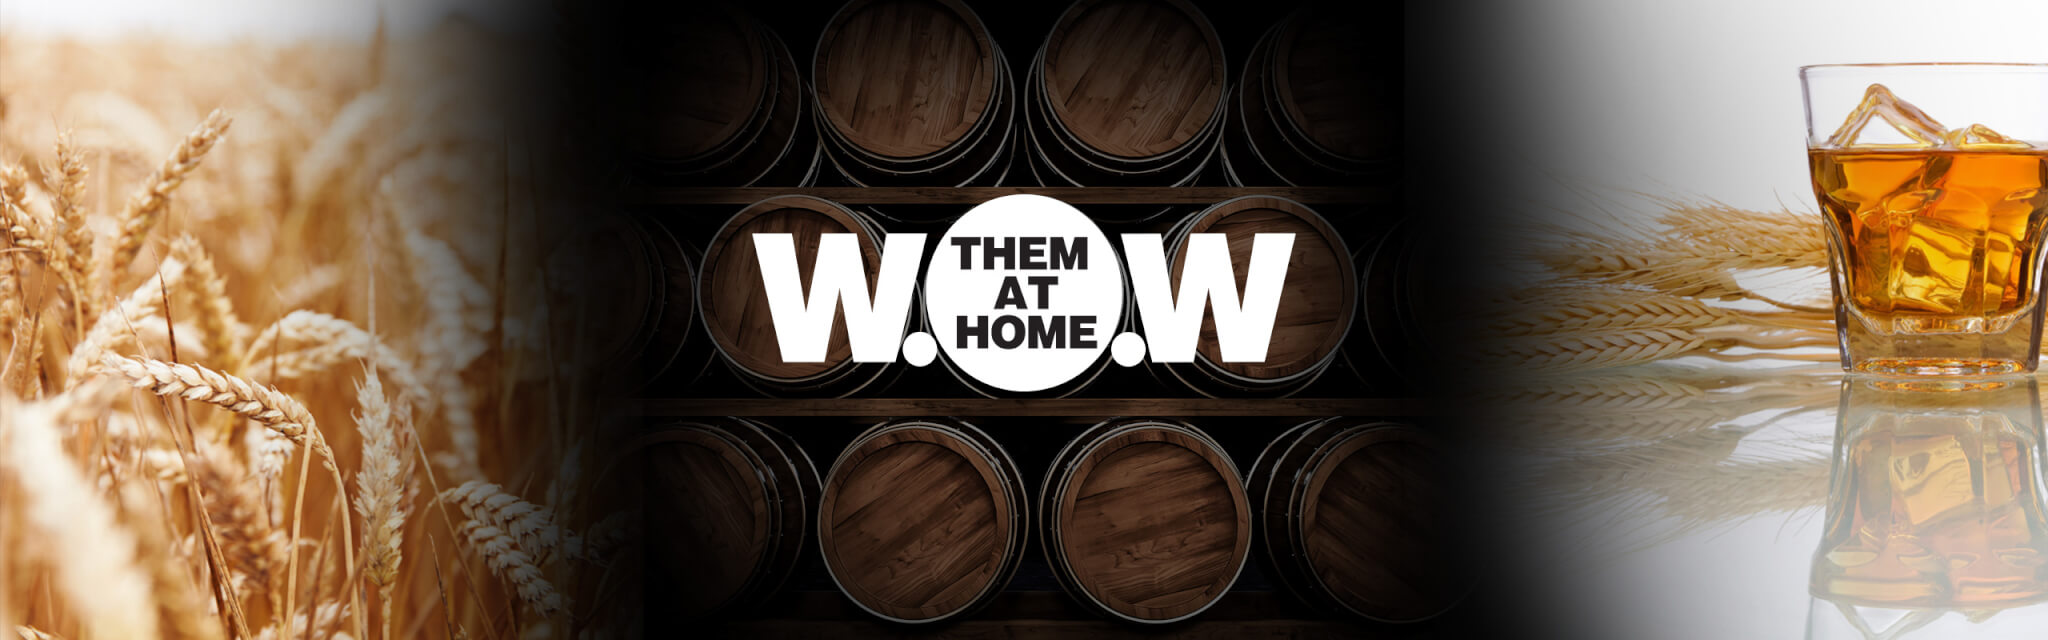 WOW THEM AT HOME - NATIONAL BOURBON MONTH